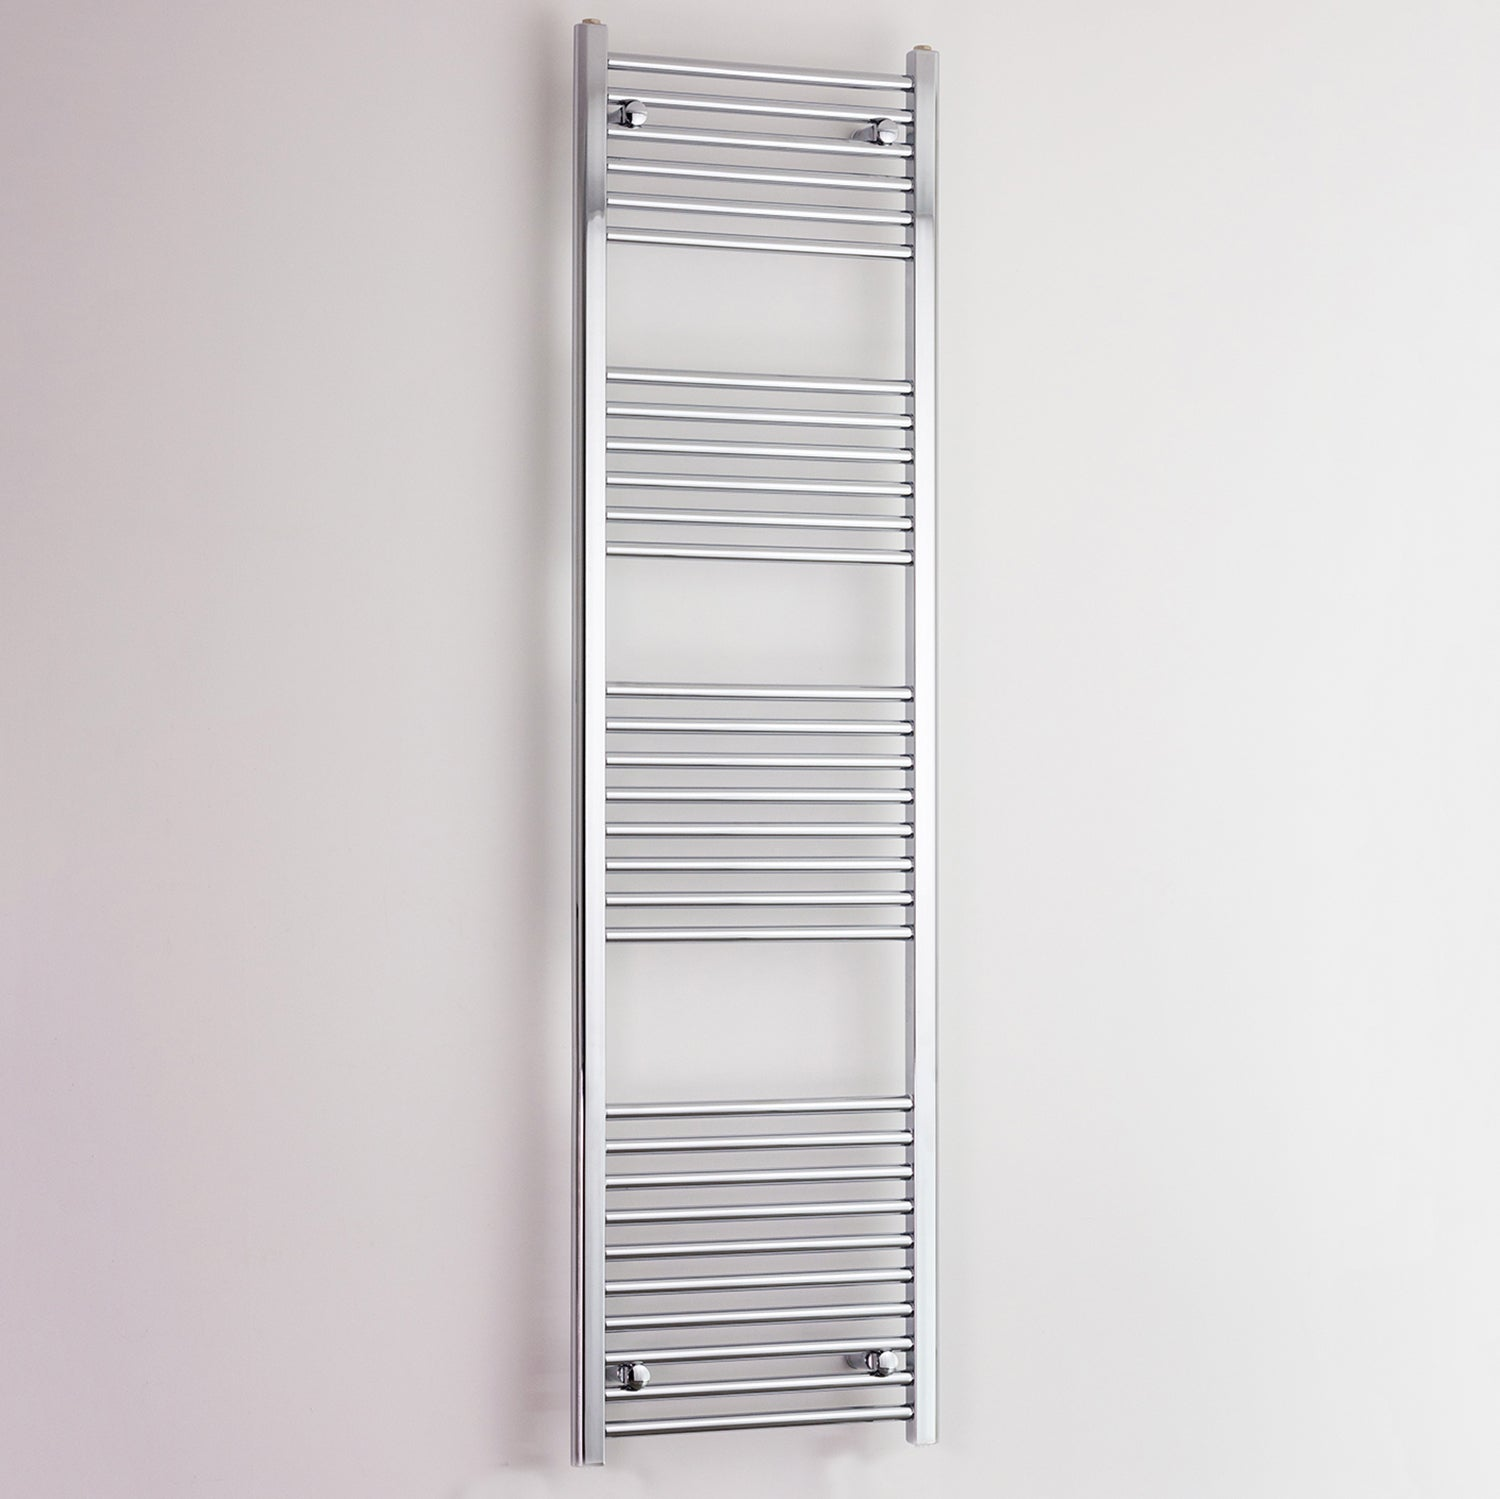 500mm Wide 1800mm High Curved Chrome Heated Towel Rail Radiator HTR,Towel Rail Only